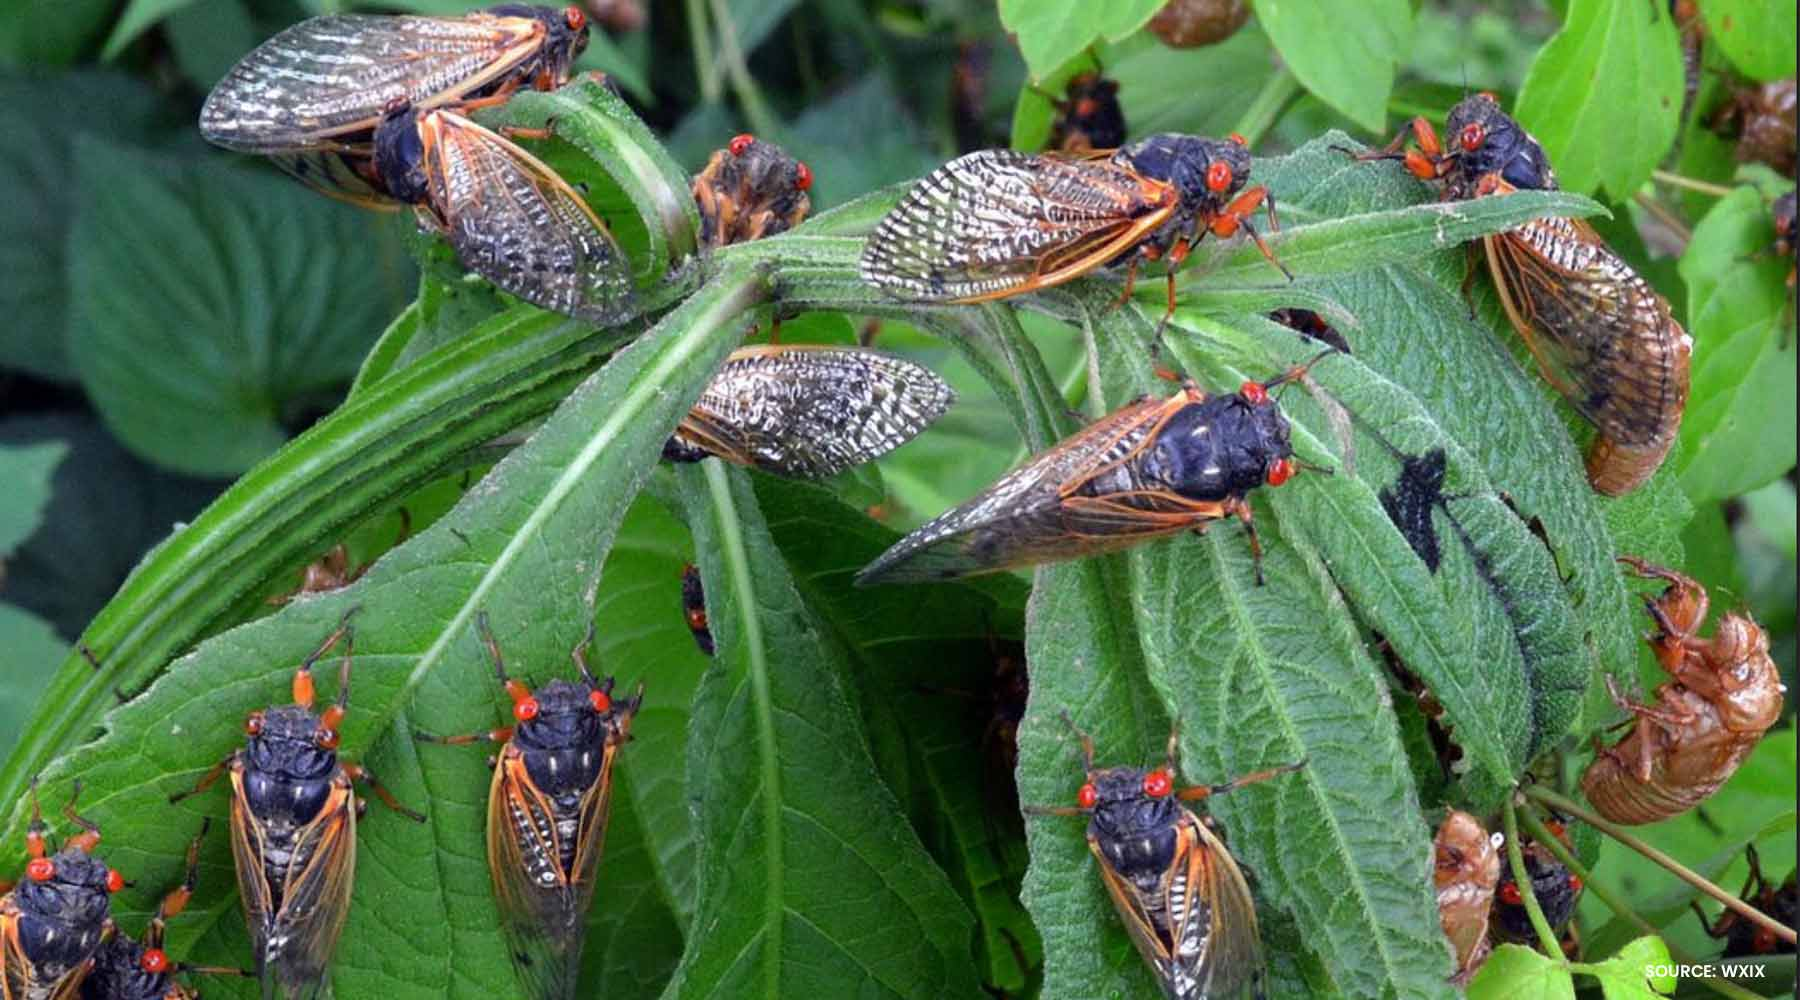 CICADA MANIA: 7 COOL FACTS